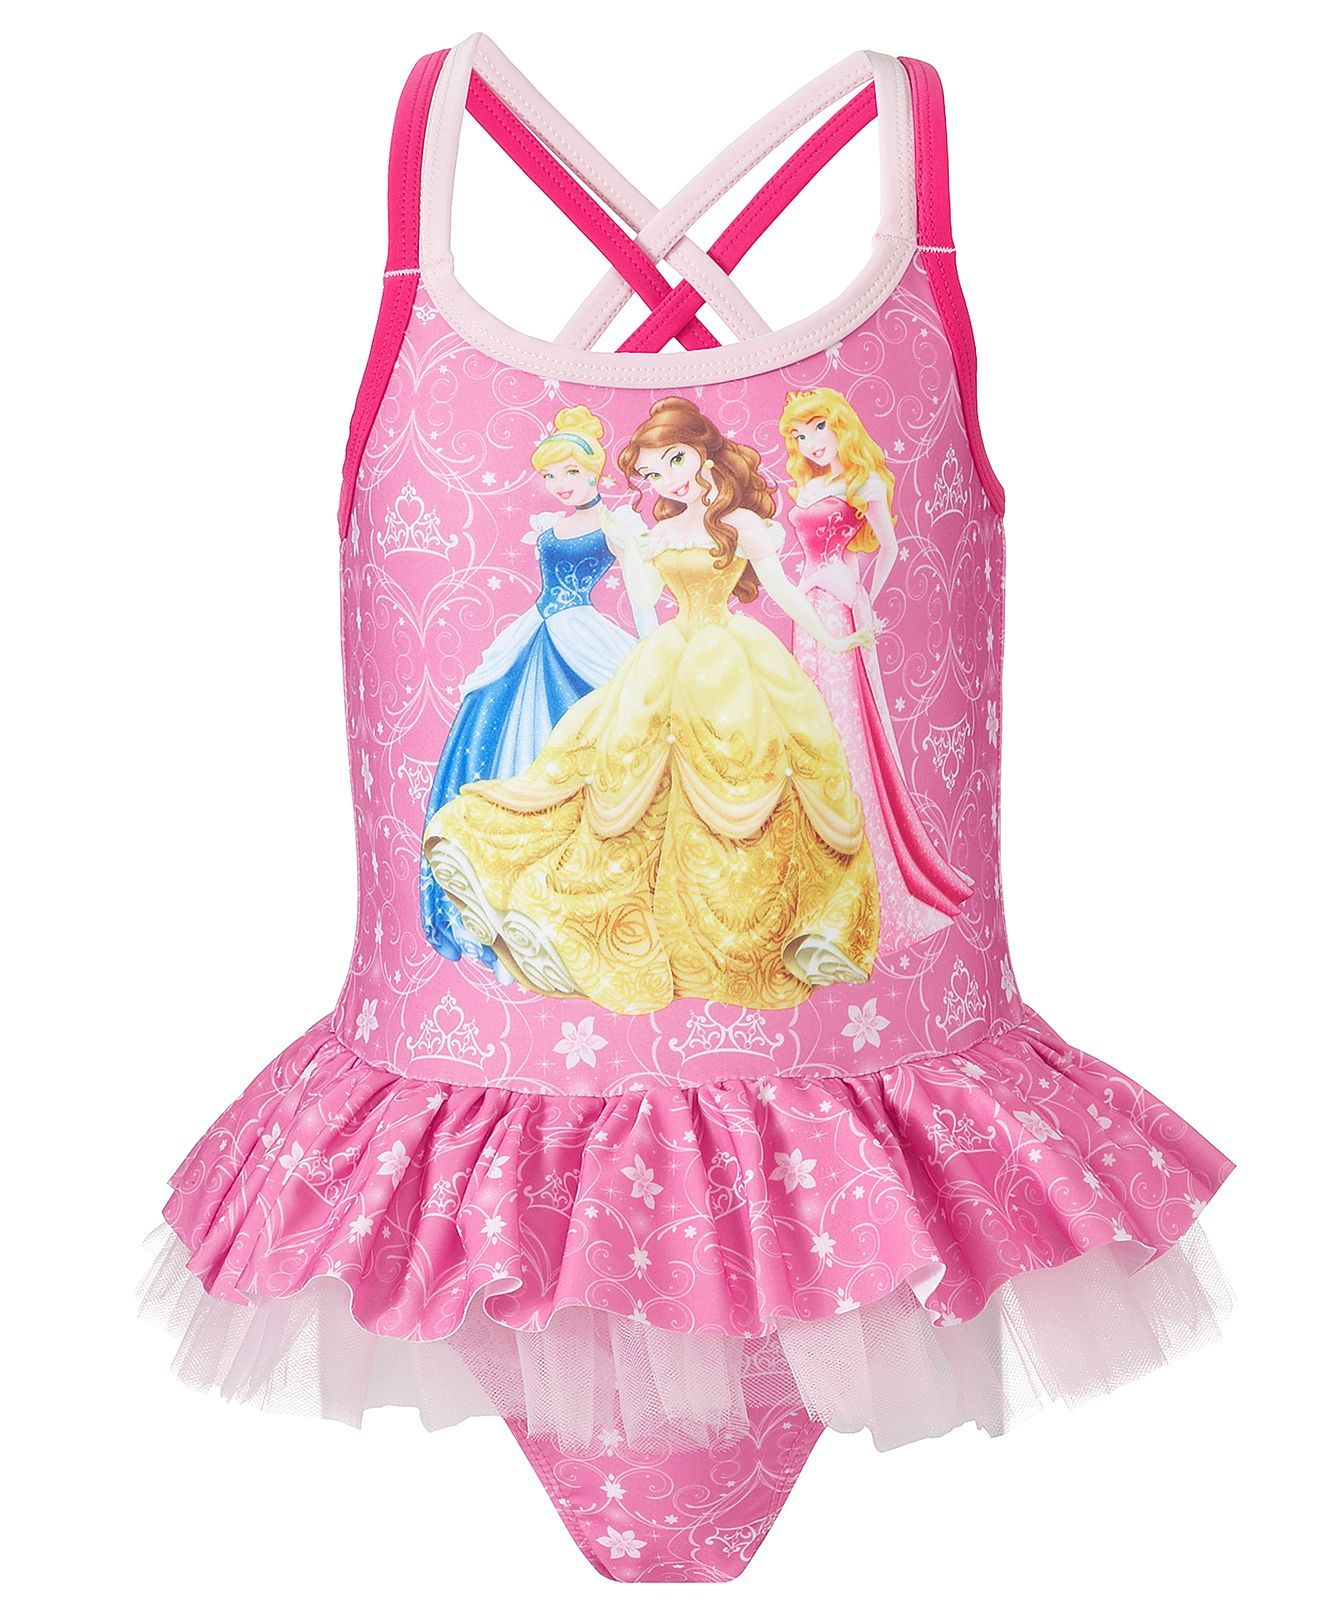 b33c5becd5 Dream Wave Kids Swimwear, Toddler Girls Disney Princess One-Piece Swimsuit  - Kids Girls 2-6X - Macy's